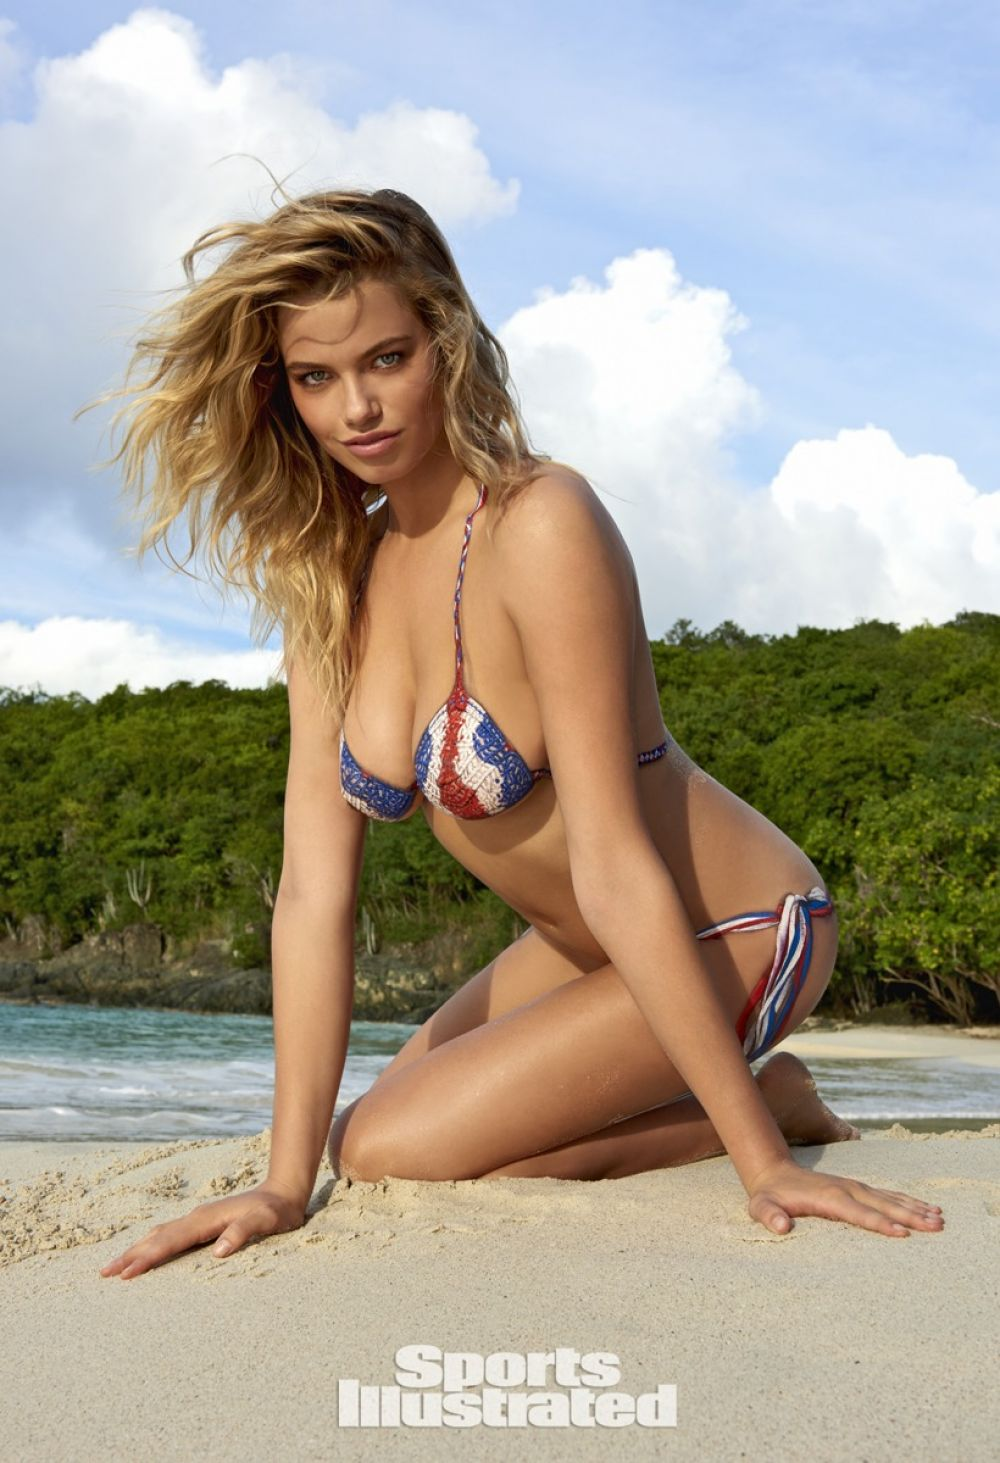 Hailey Clauson Swimsuit Sports Illustrated 2015